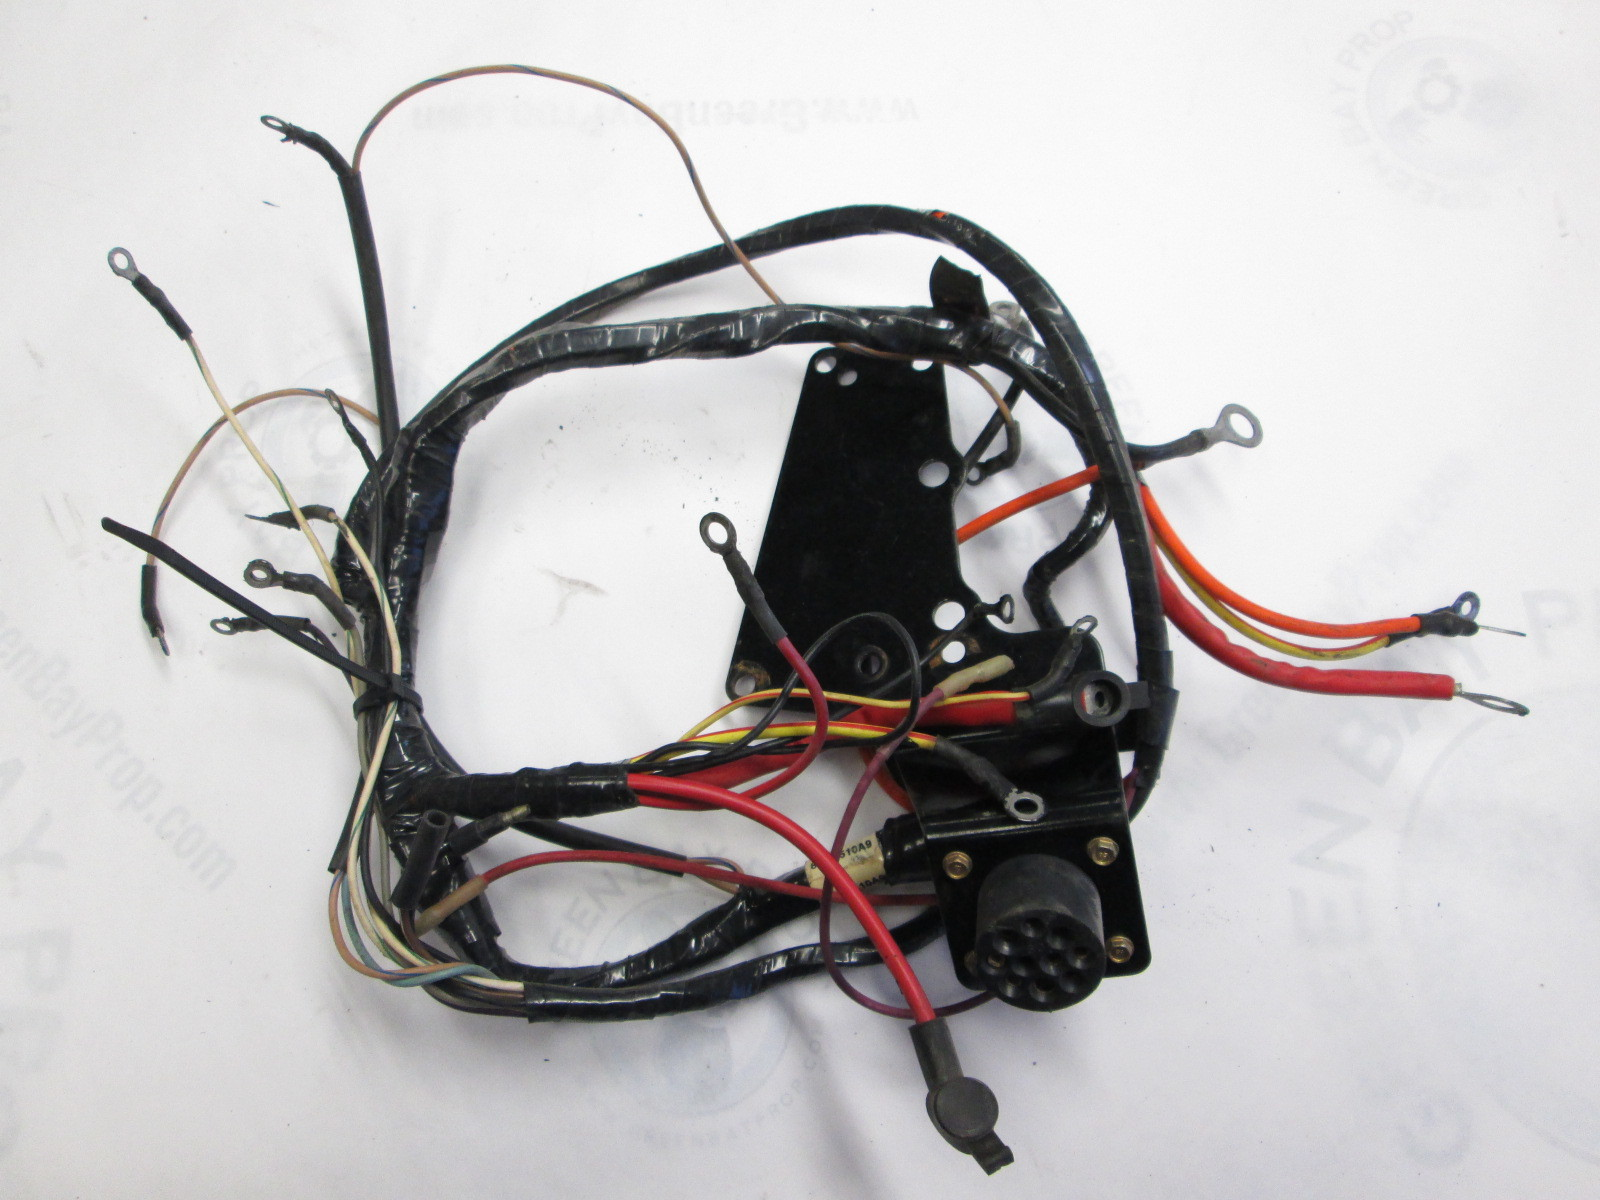 hight resolution of 84 99510a9 engine wire harness for mercruiser 4 3 v6 stern drive84 99510a9 engine wire harness